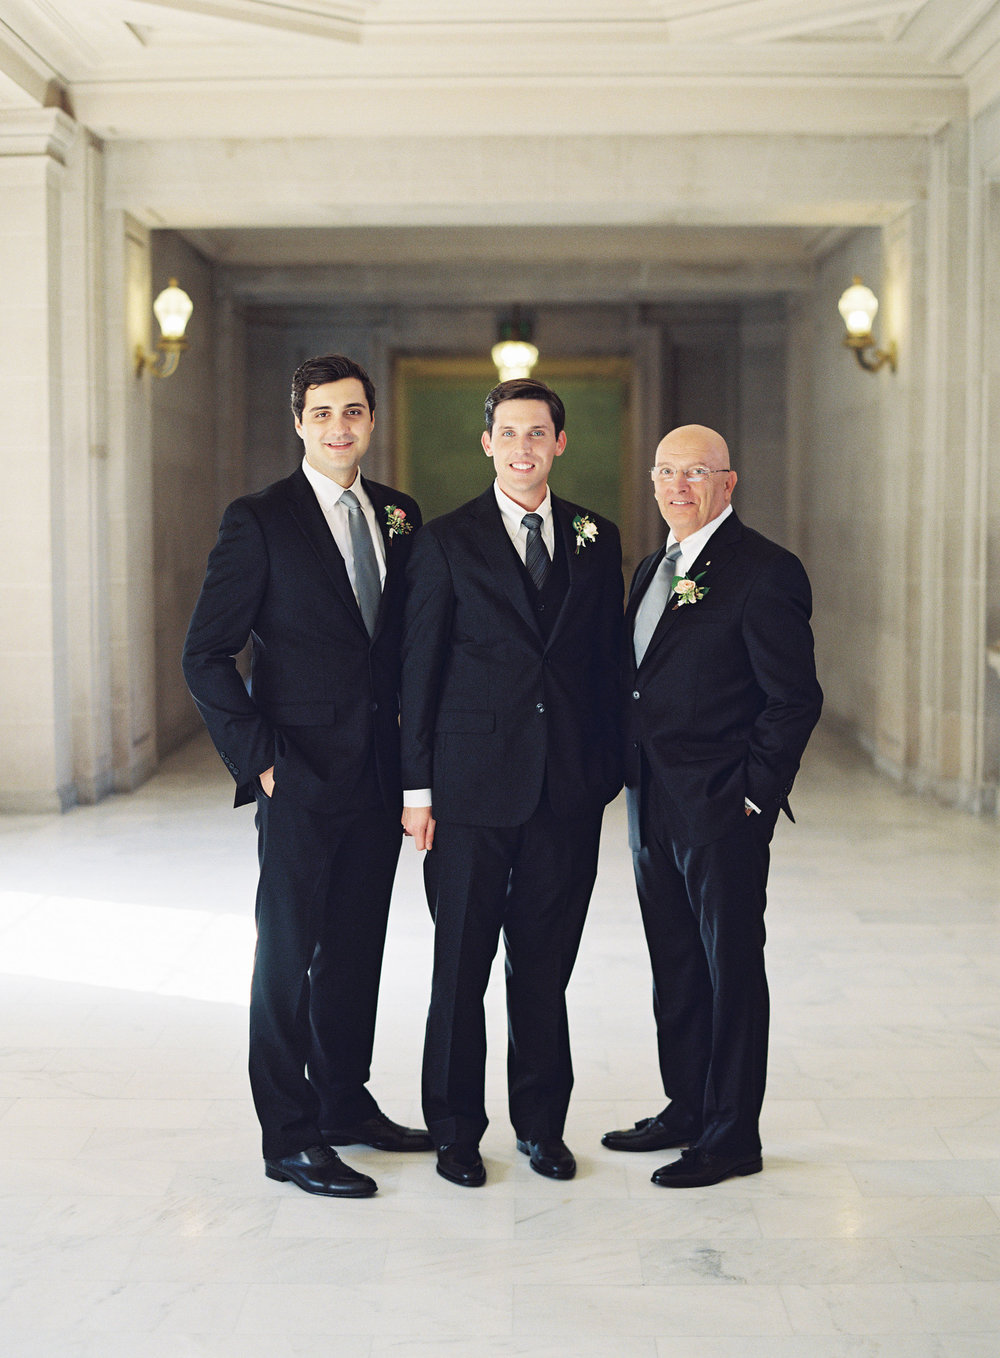 Meghan Mehan Photography - California Wedding Photographer | San Francisco City Hall Wedding 071.jpg